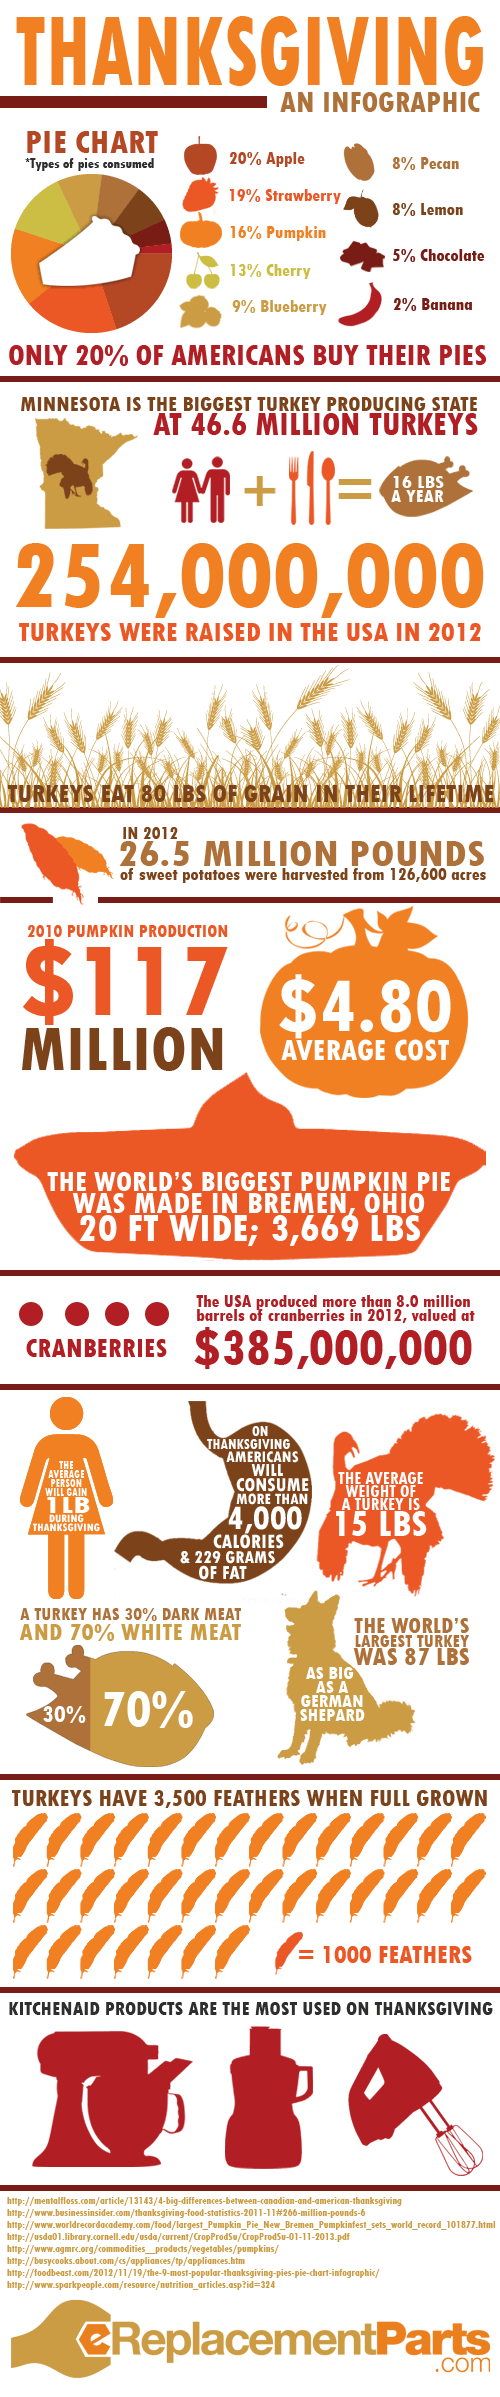 Thanksgiving: An Infographic